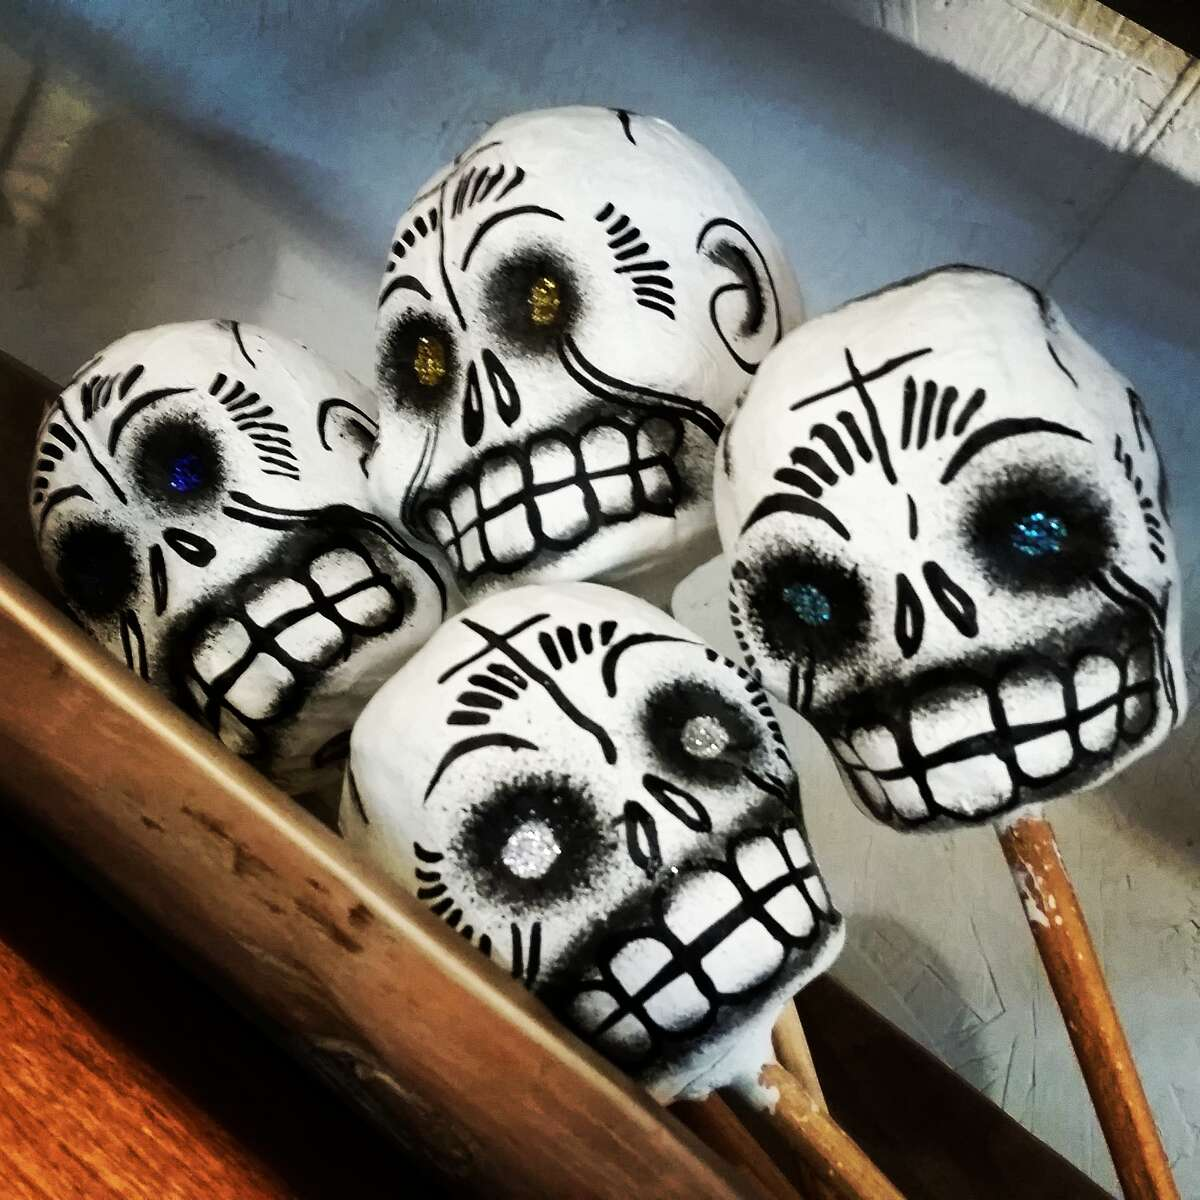 Day of the Dead In Mexico and increasingly in the U.S., Nov. 1 is the Day of the Dead, or Dia de los Muertos.